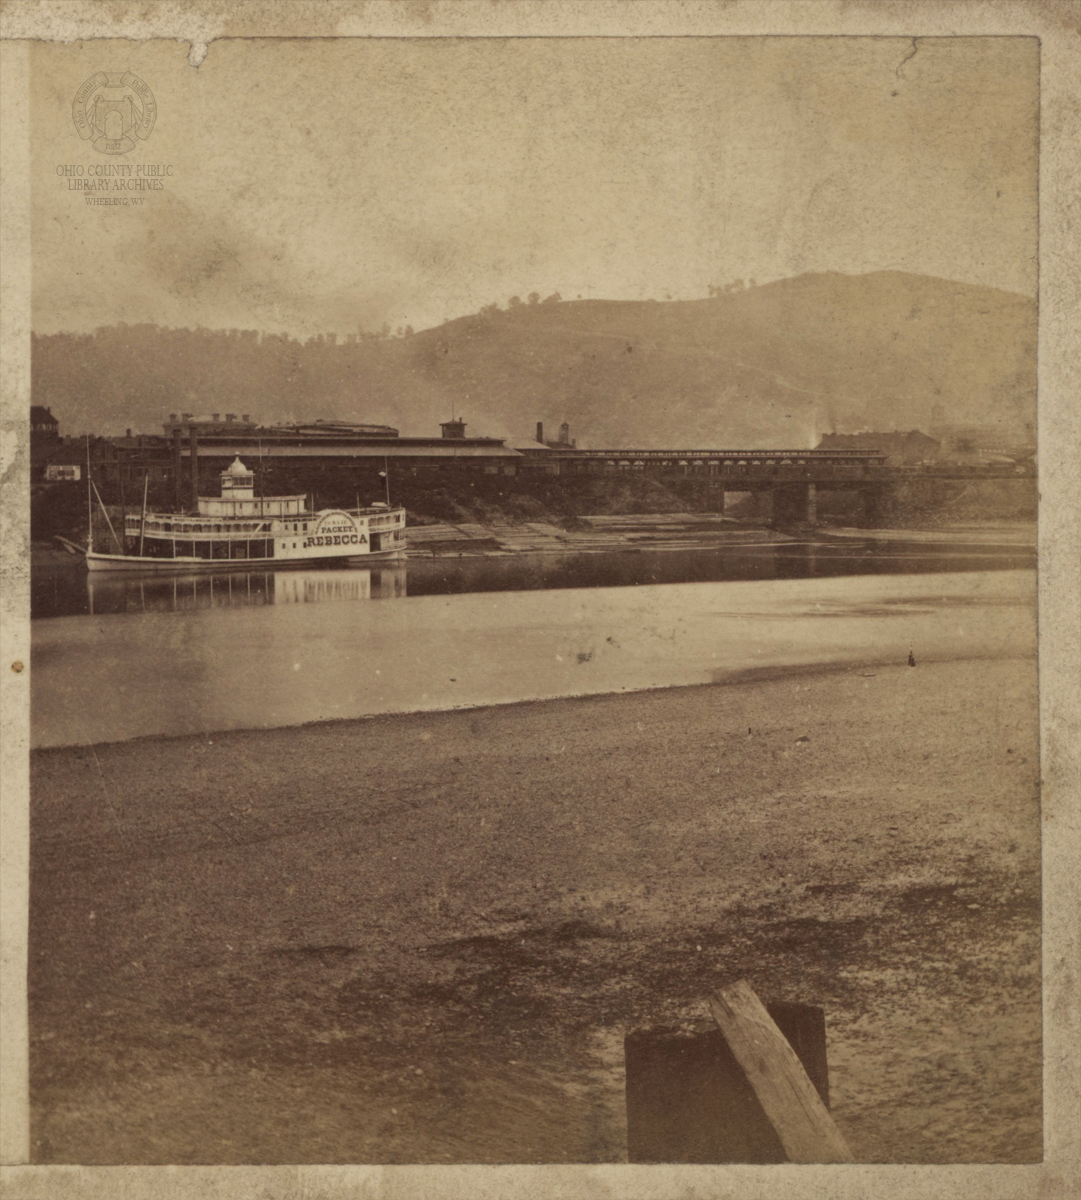 An early stereoview of the terminal that occupied the grounds prior to its rebuilding in 1906-1908.  This photograph was taken between 1867-1869.